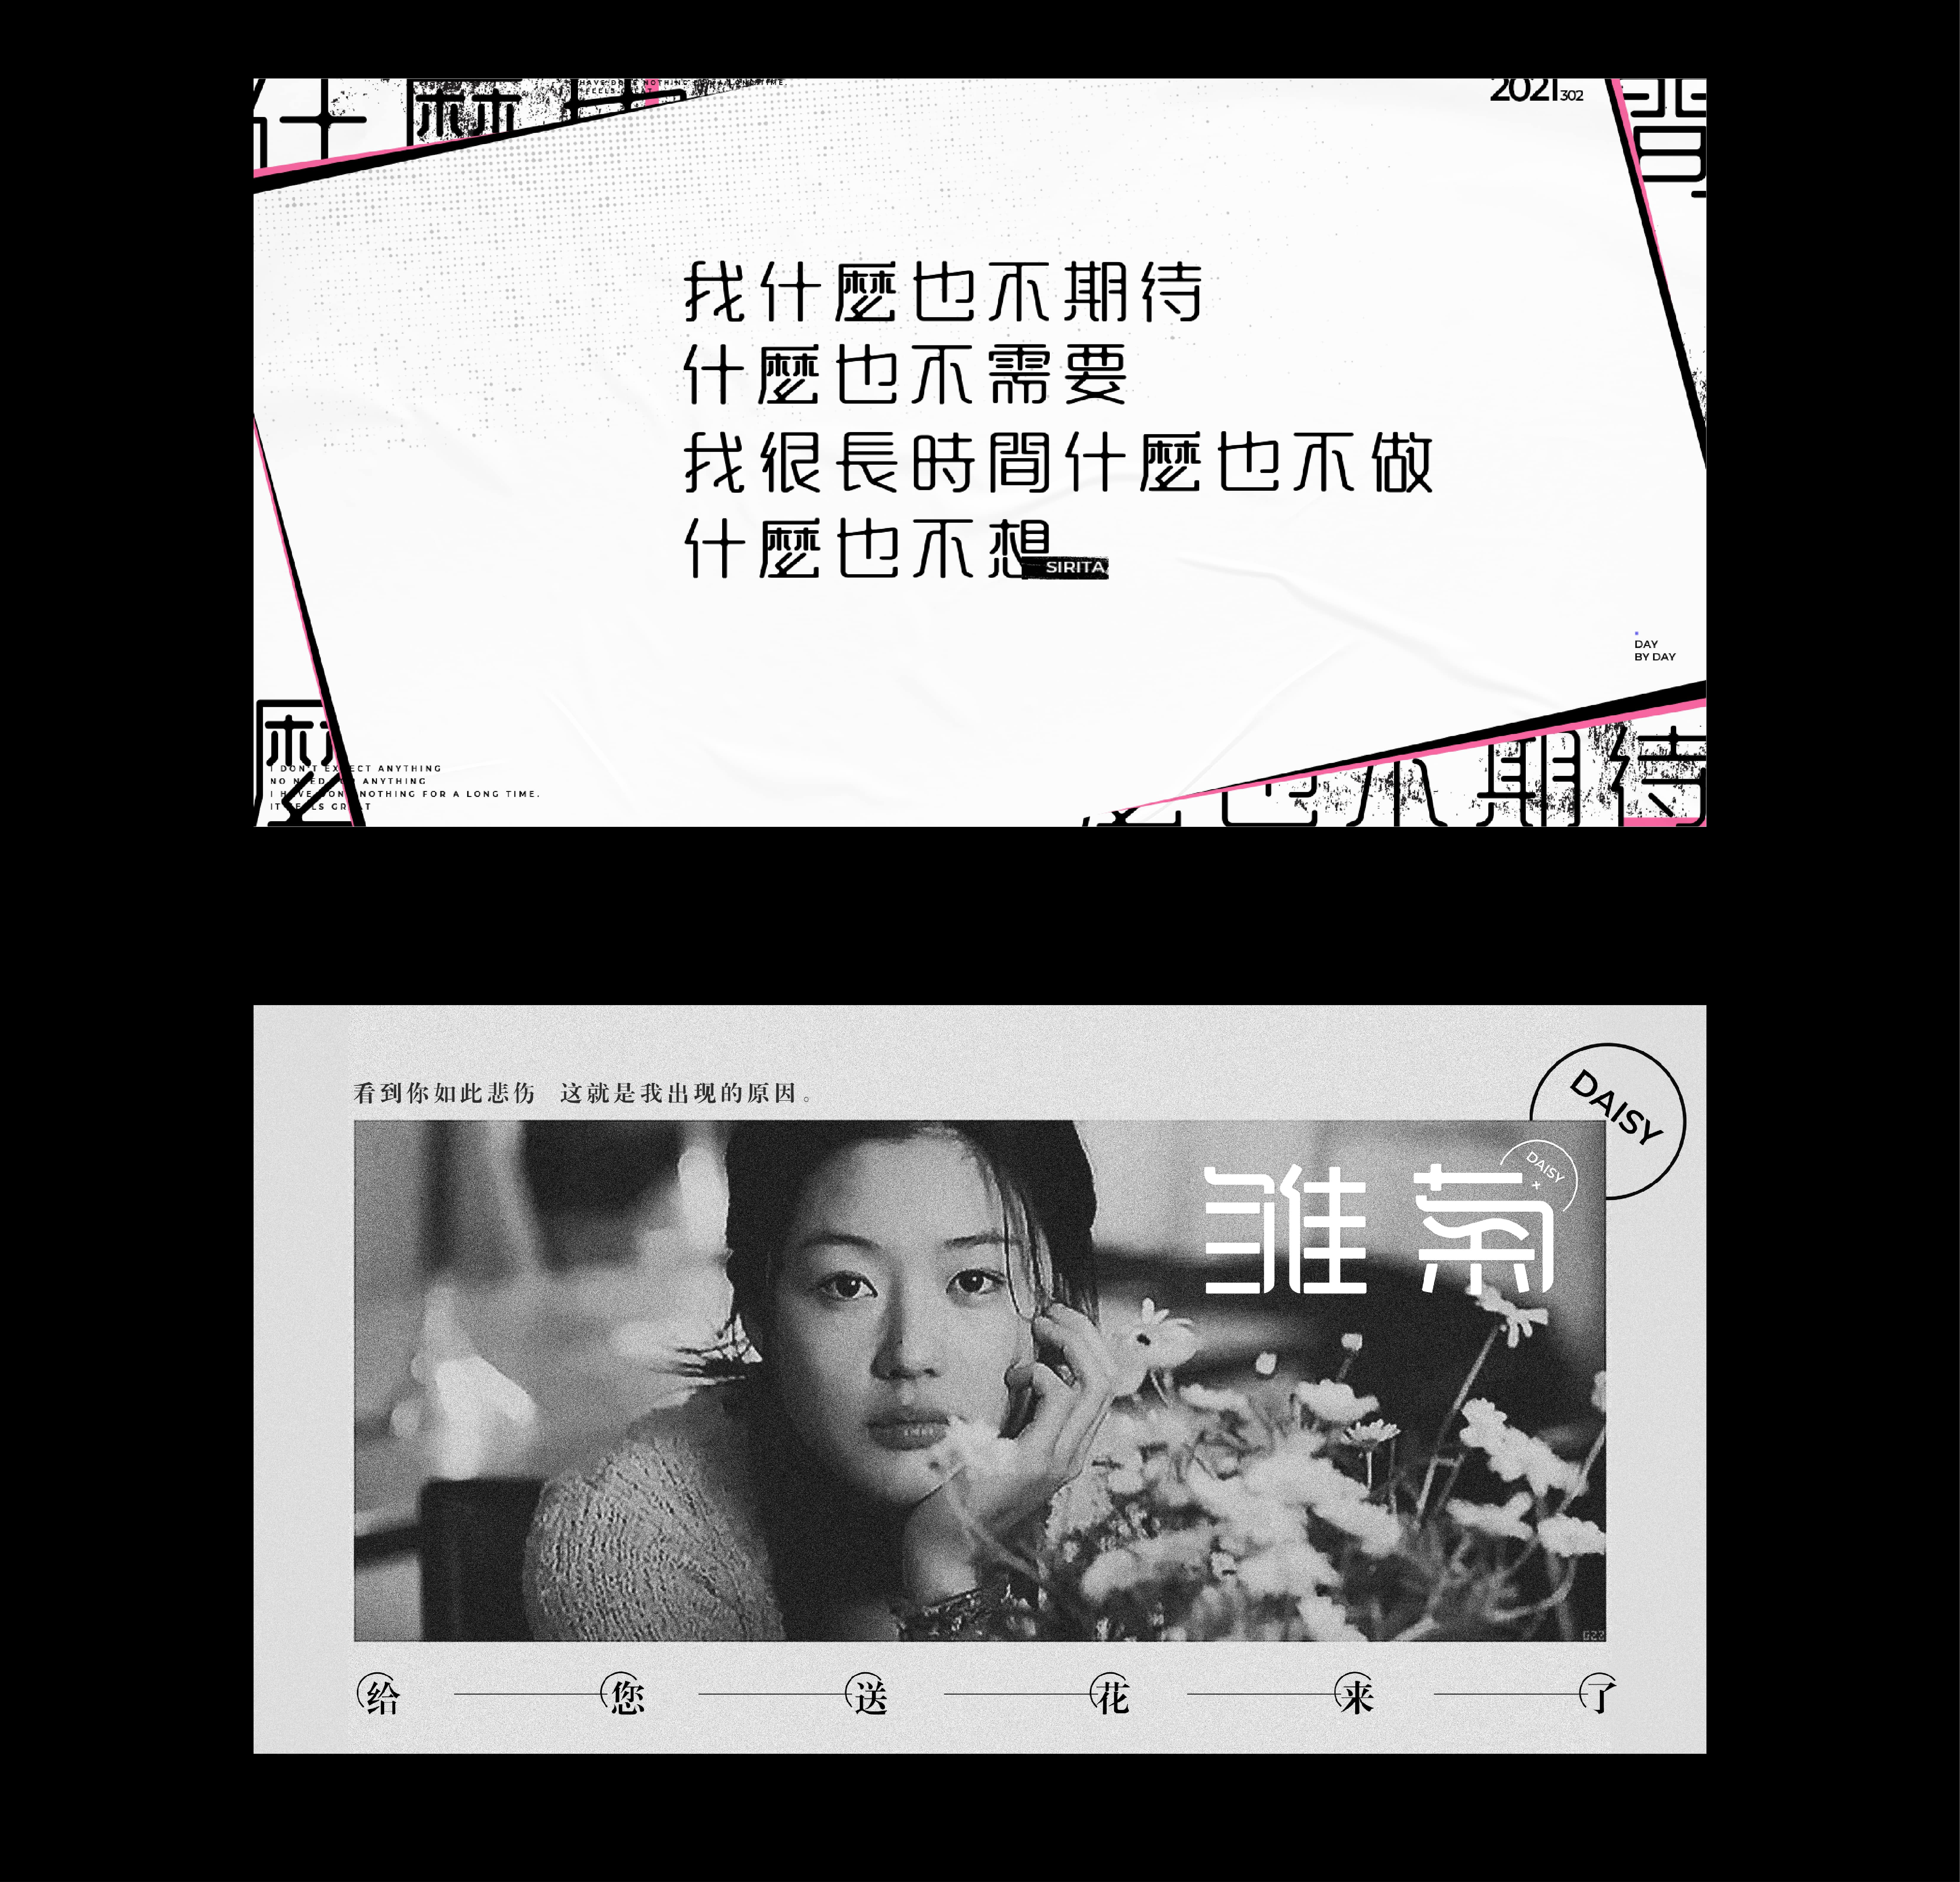 7P Collection of the latest Chinese font design schemes in 2021 #.6